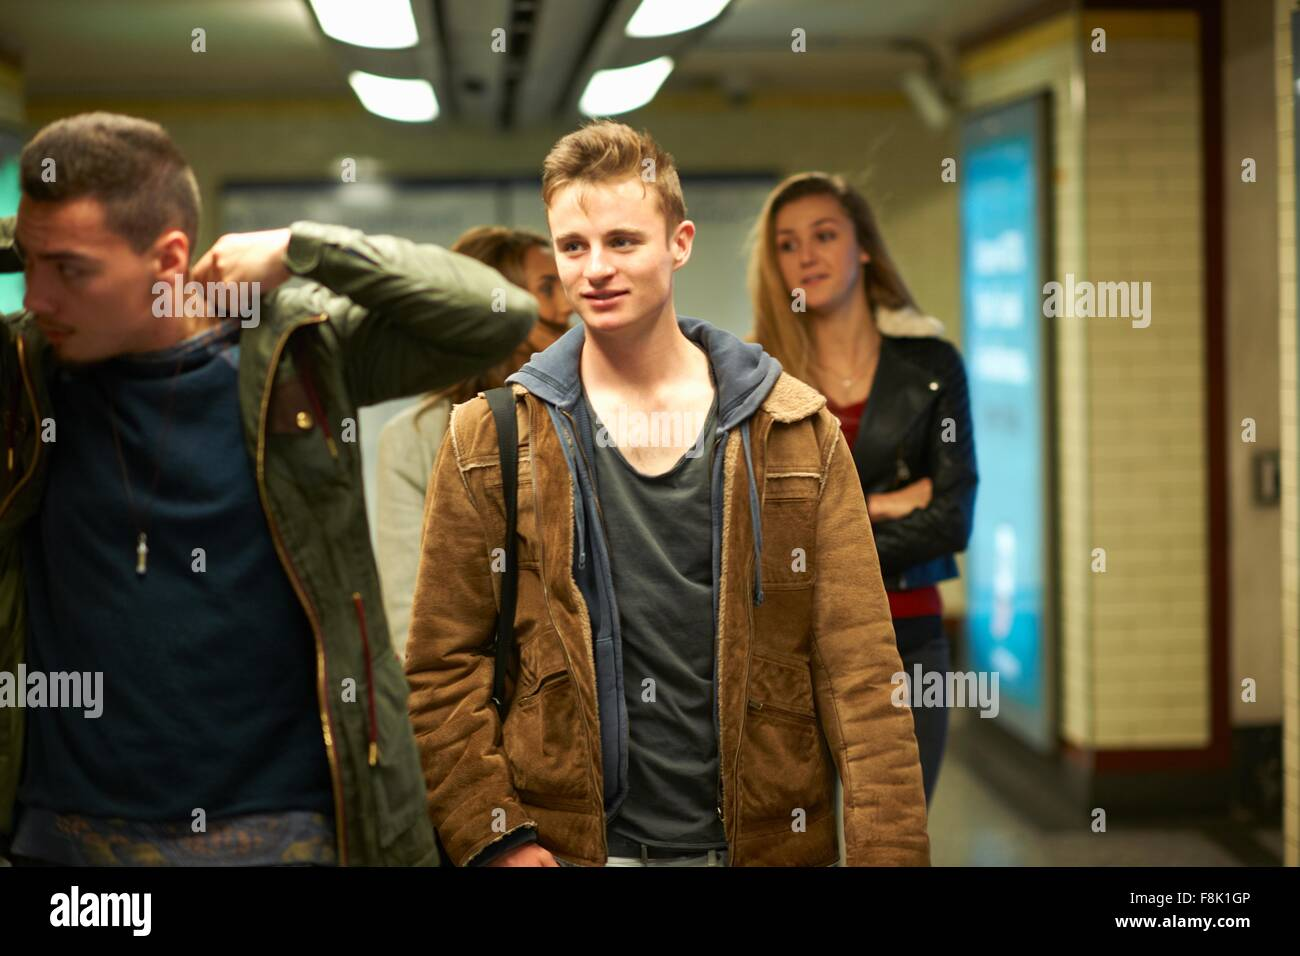 Four young adult friends walking through London underground station, London, UK Stock Photo